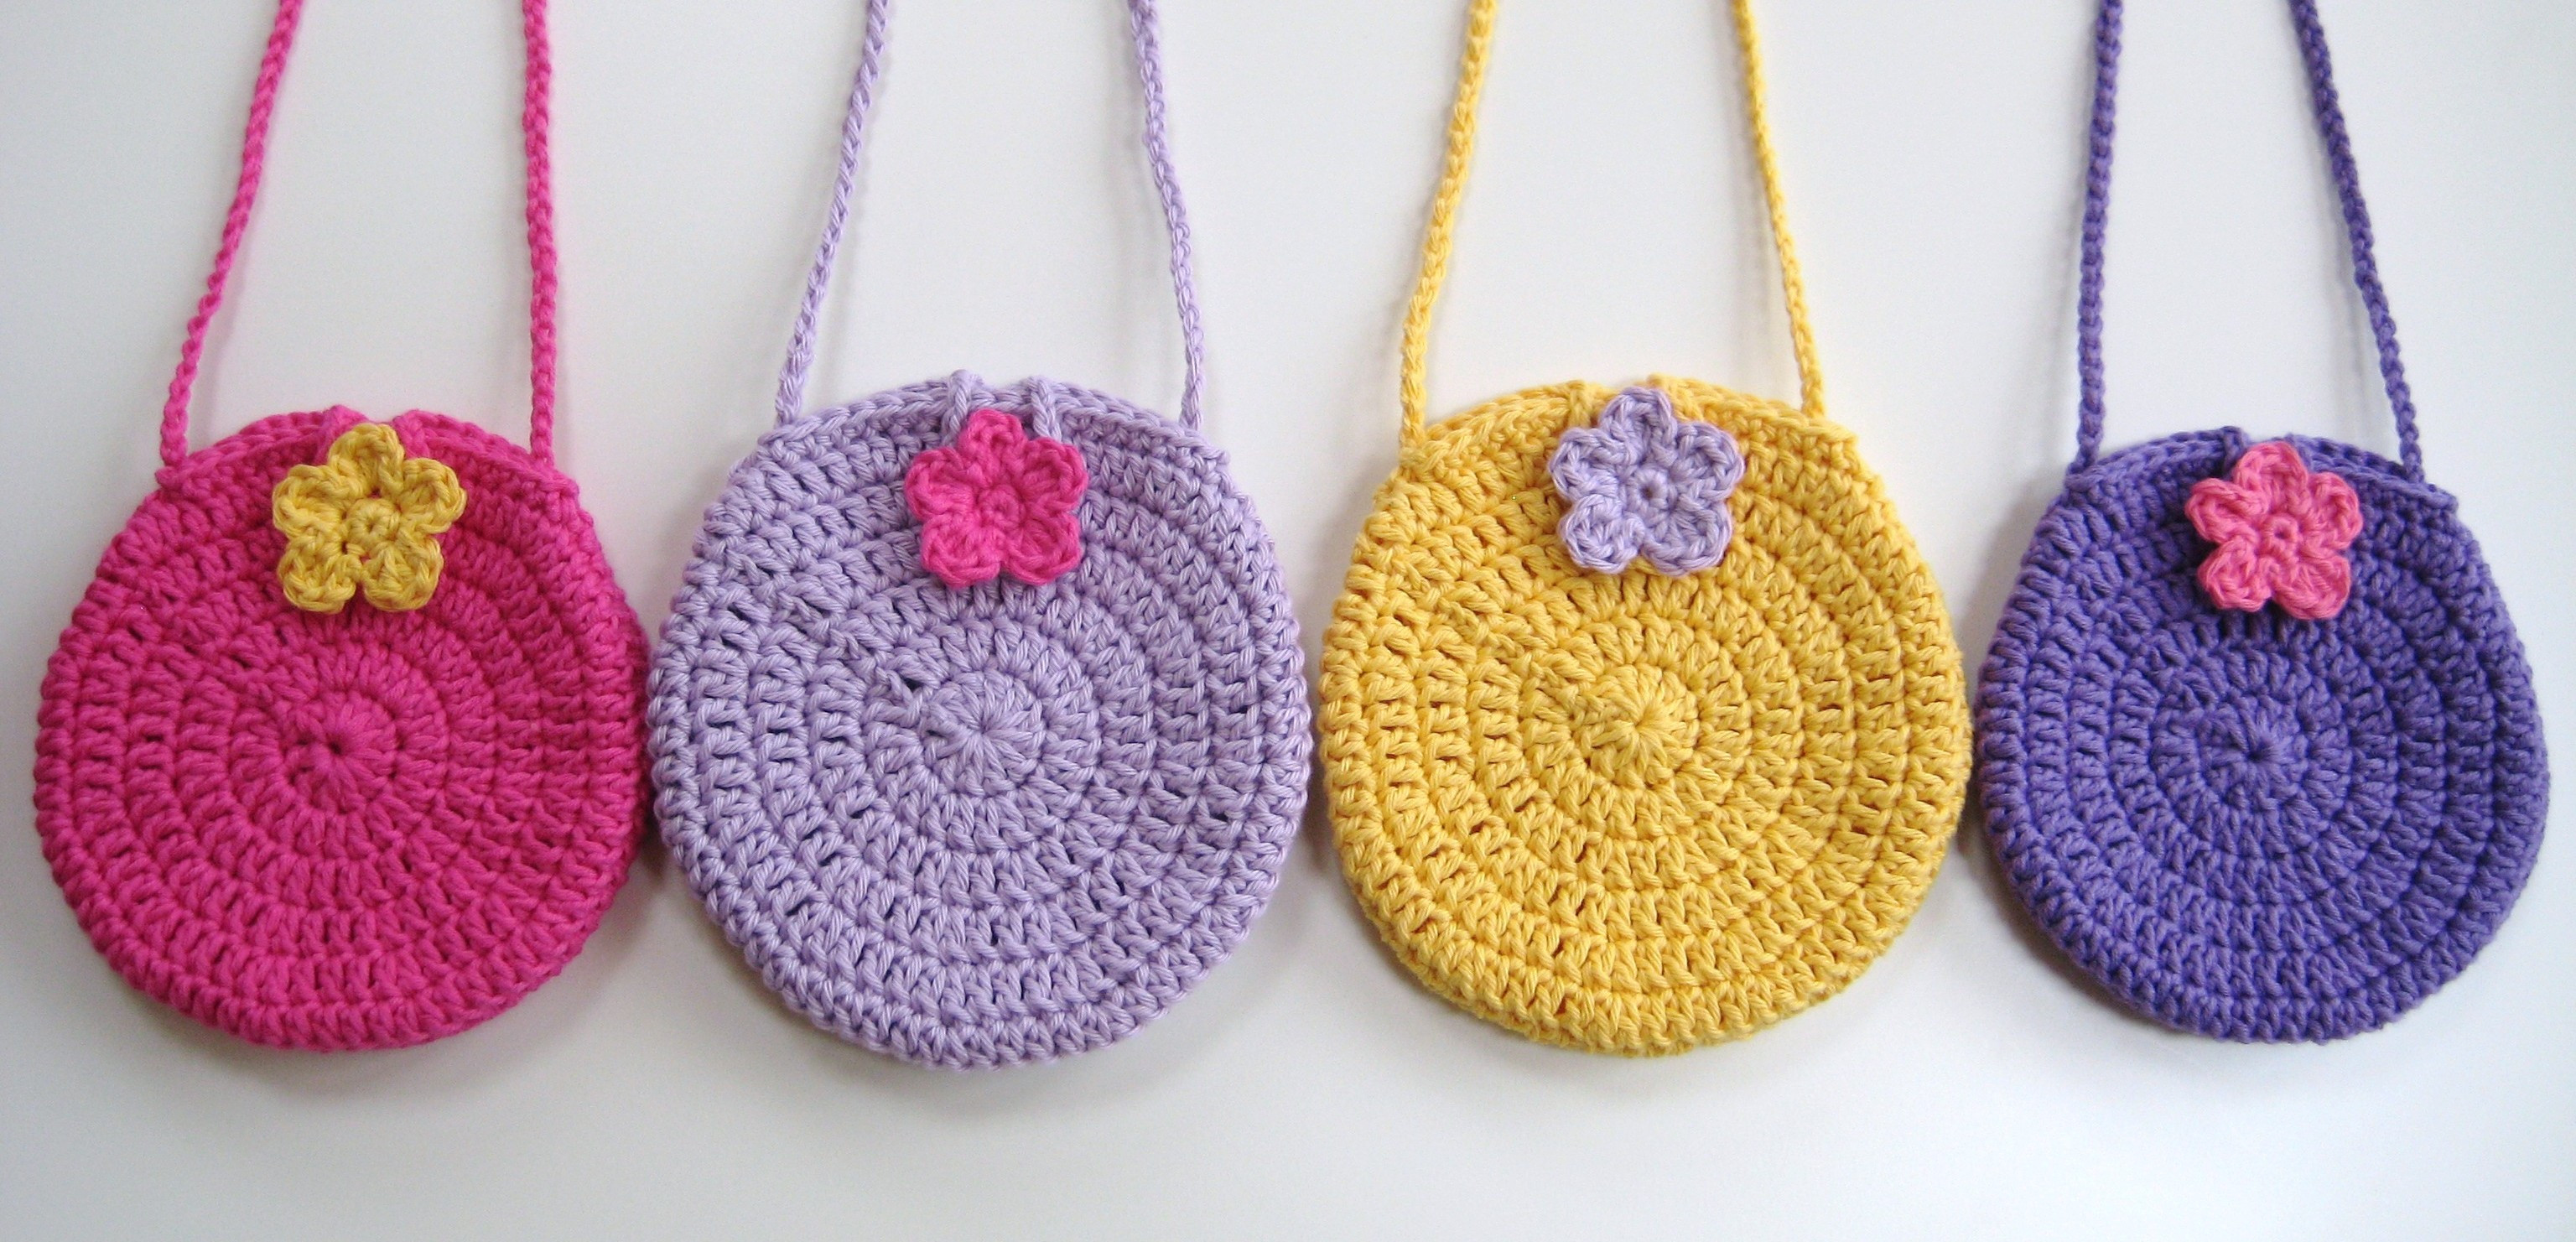 Crochet Backpack Pattern Beautiful Round Bag Crochet Pattern No3 Instant Download Pdf Of Perfect 44 Pictures Crochet Backpack Pattern